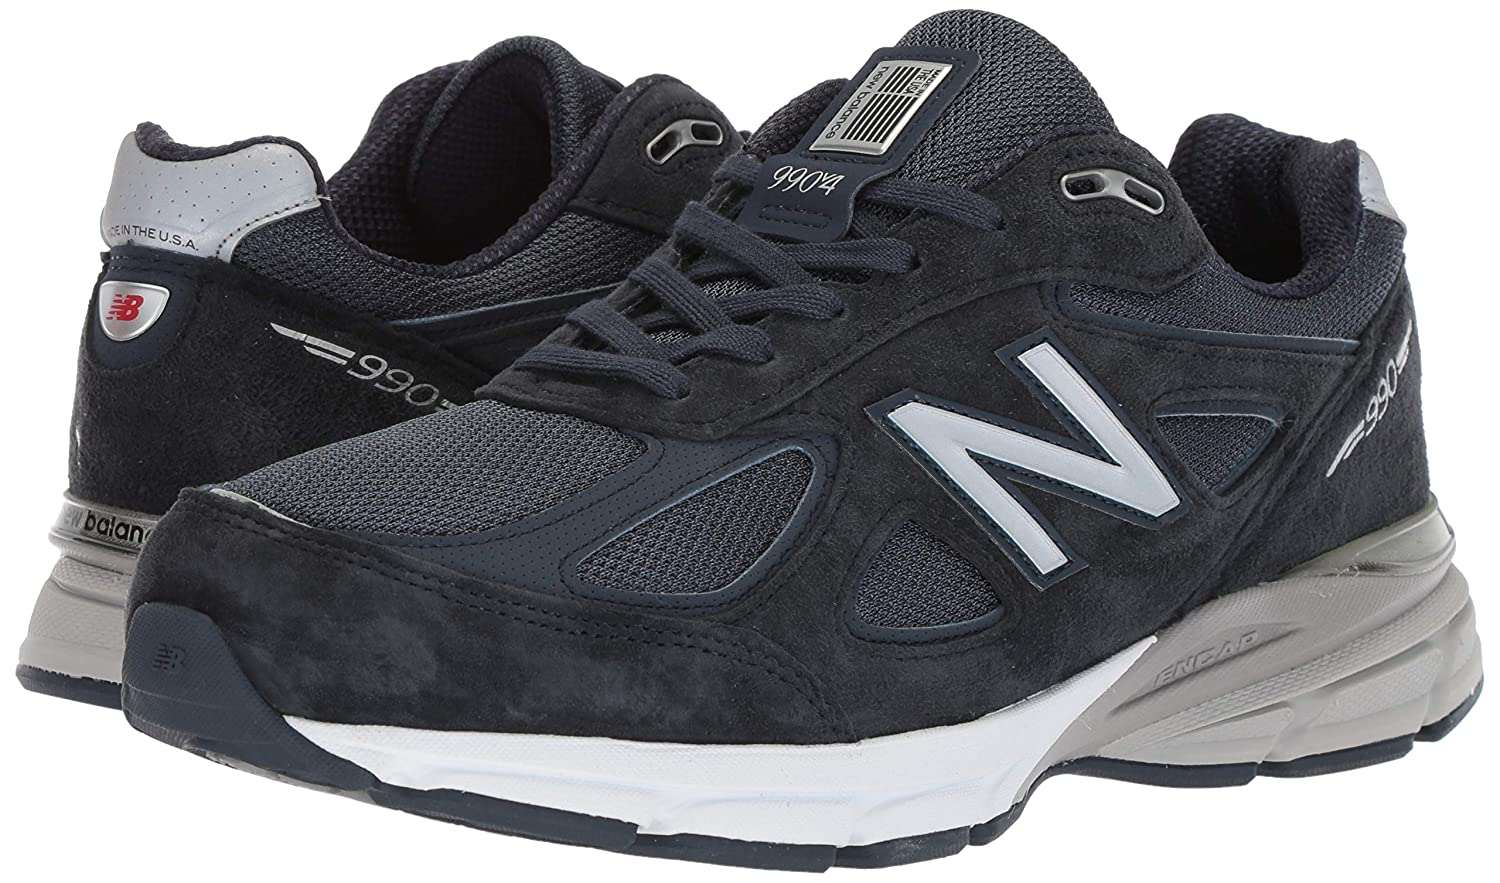 New-Balance-990-990v4-Classicc-Retro-Fashion-Sneaker-Made-in-USA thumbnail 85